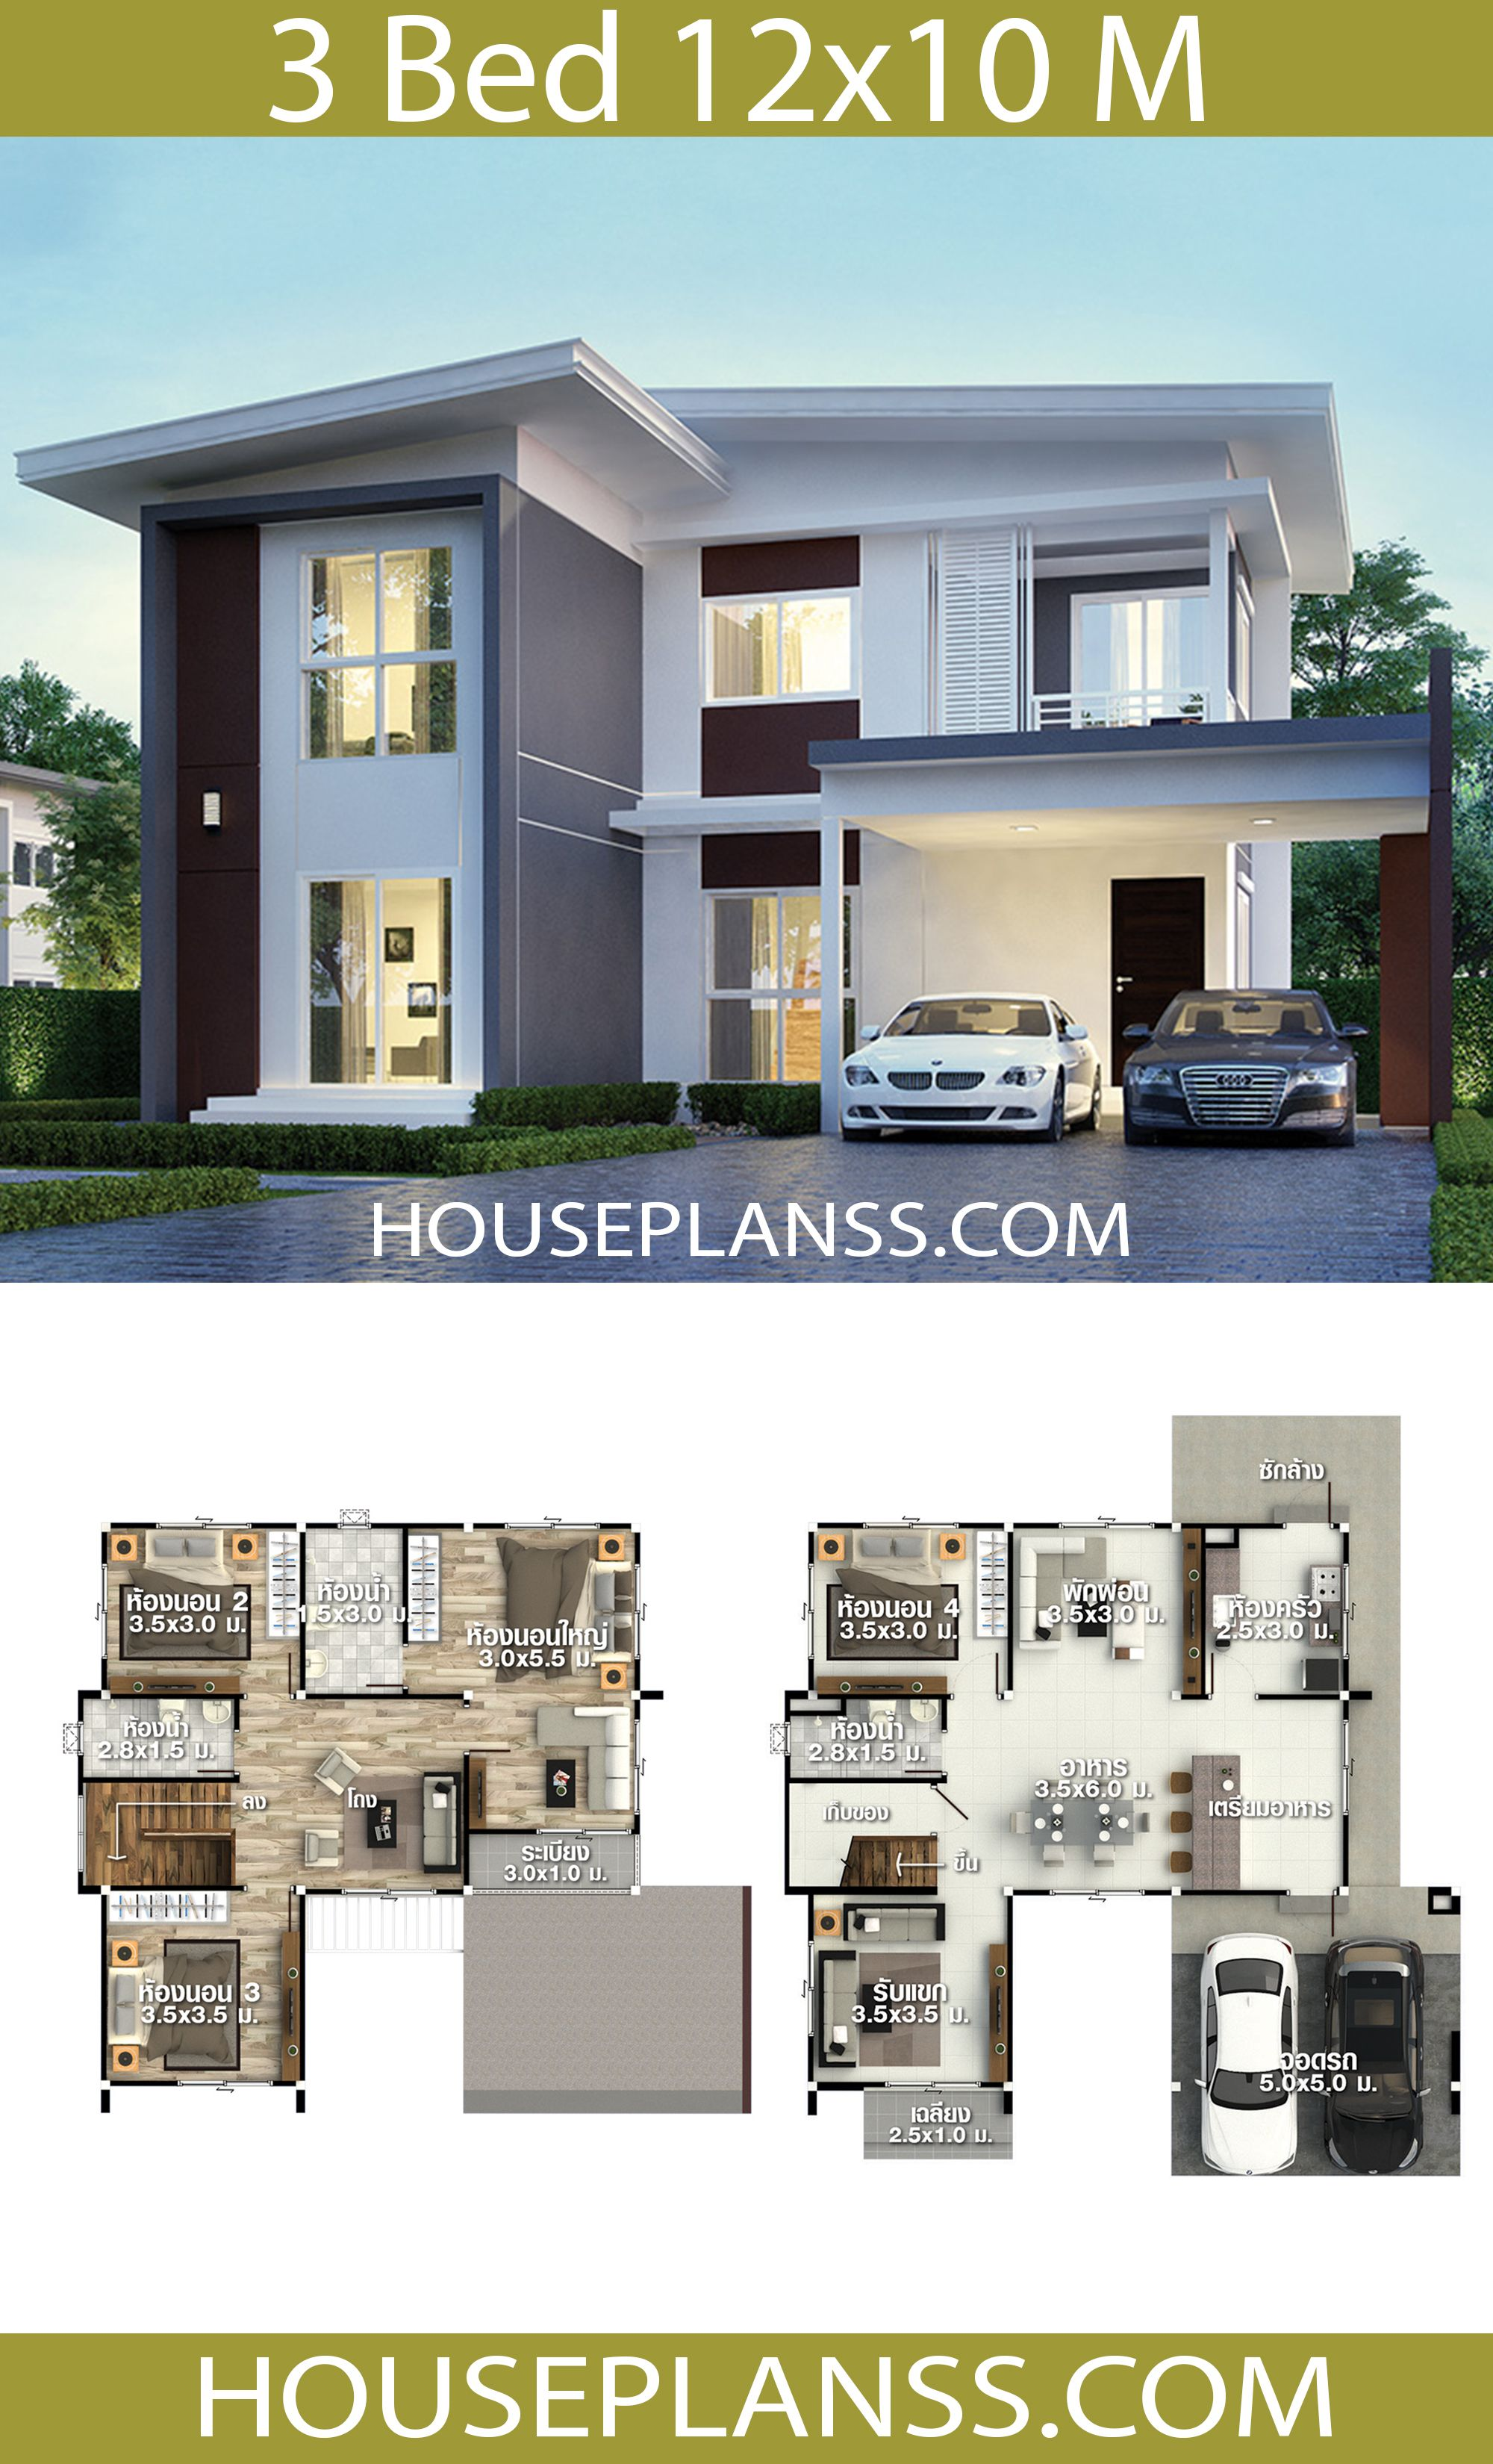 House Plans Design Idea 12x10 With 3 Bedrooms House Plans 3d In 2020 Duplex House Design House Construction Plan Architectural House Plans